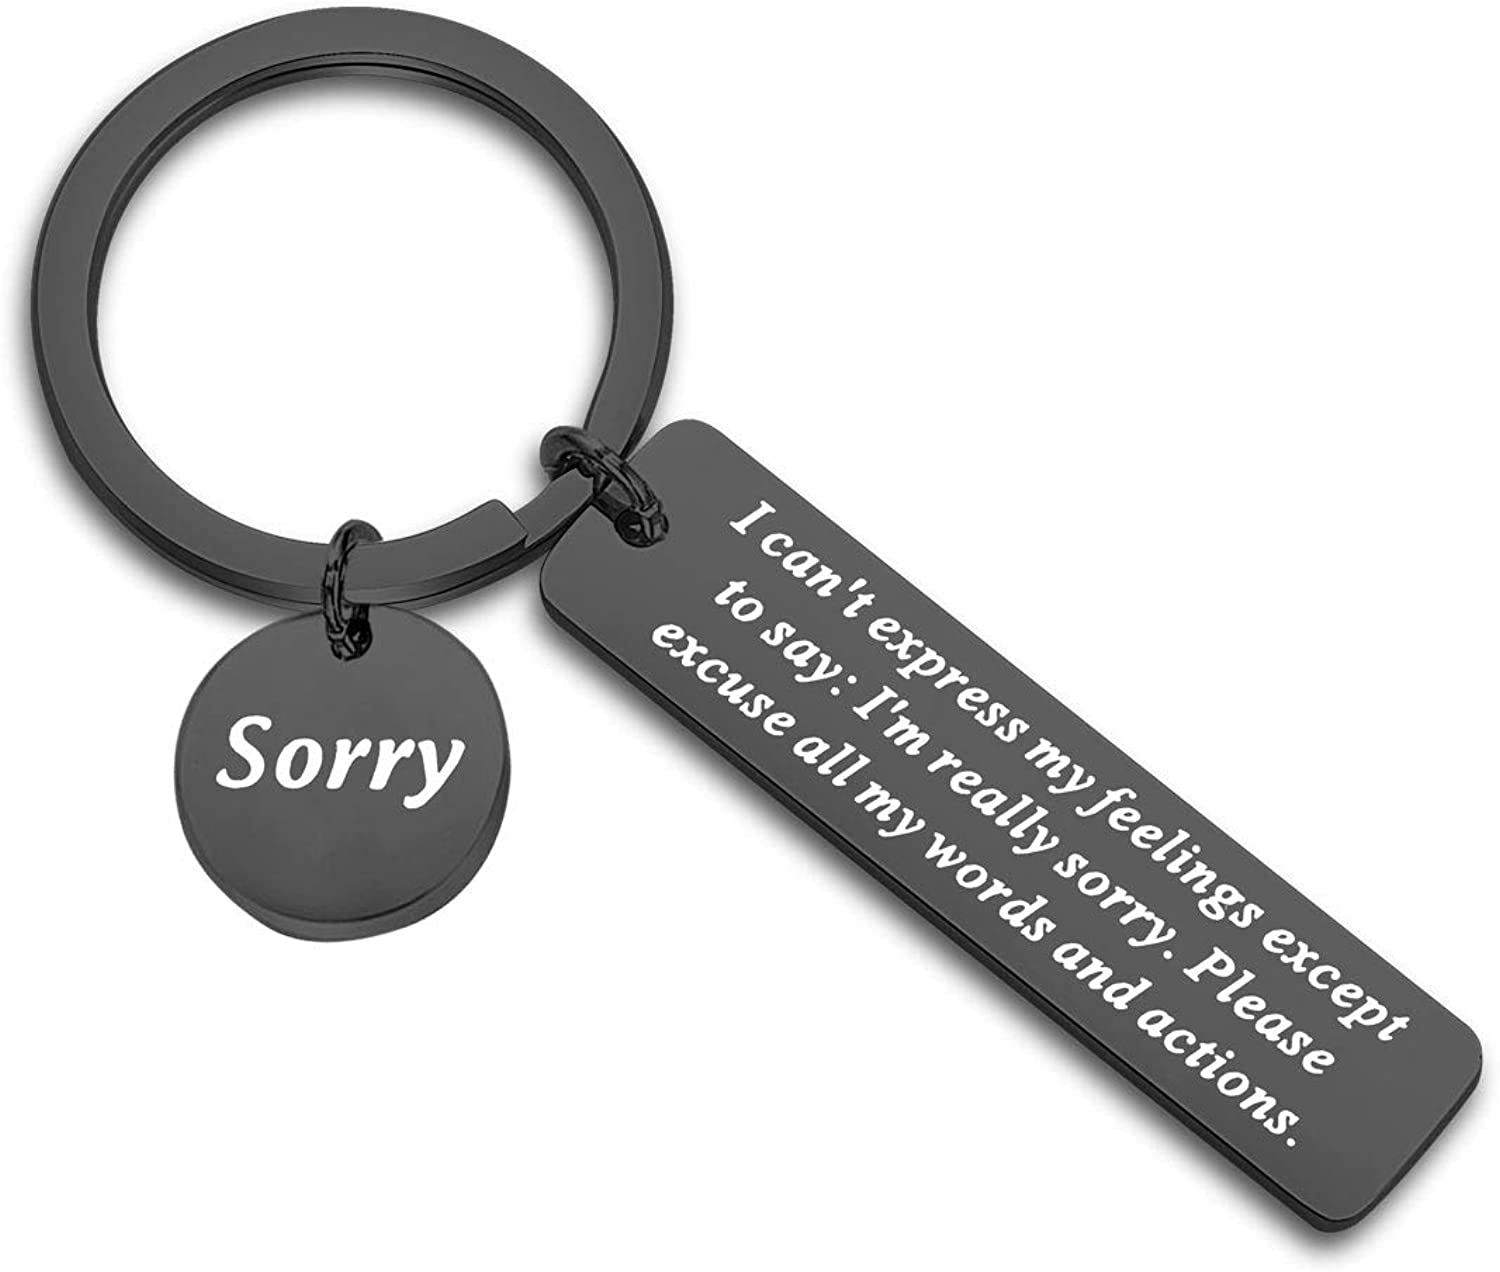 CYTING Apology Keychain Gift Im Sorry Gift Forgive Me Gift Sorry Jewelry Gift for Family Best Friends